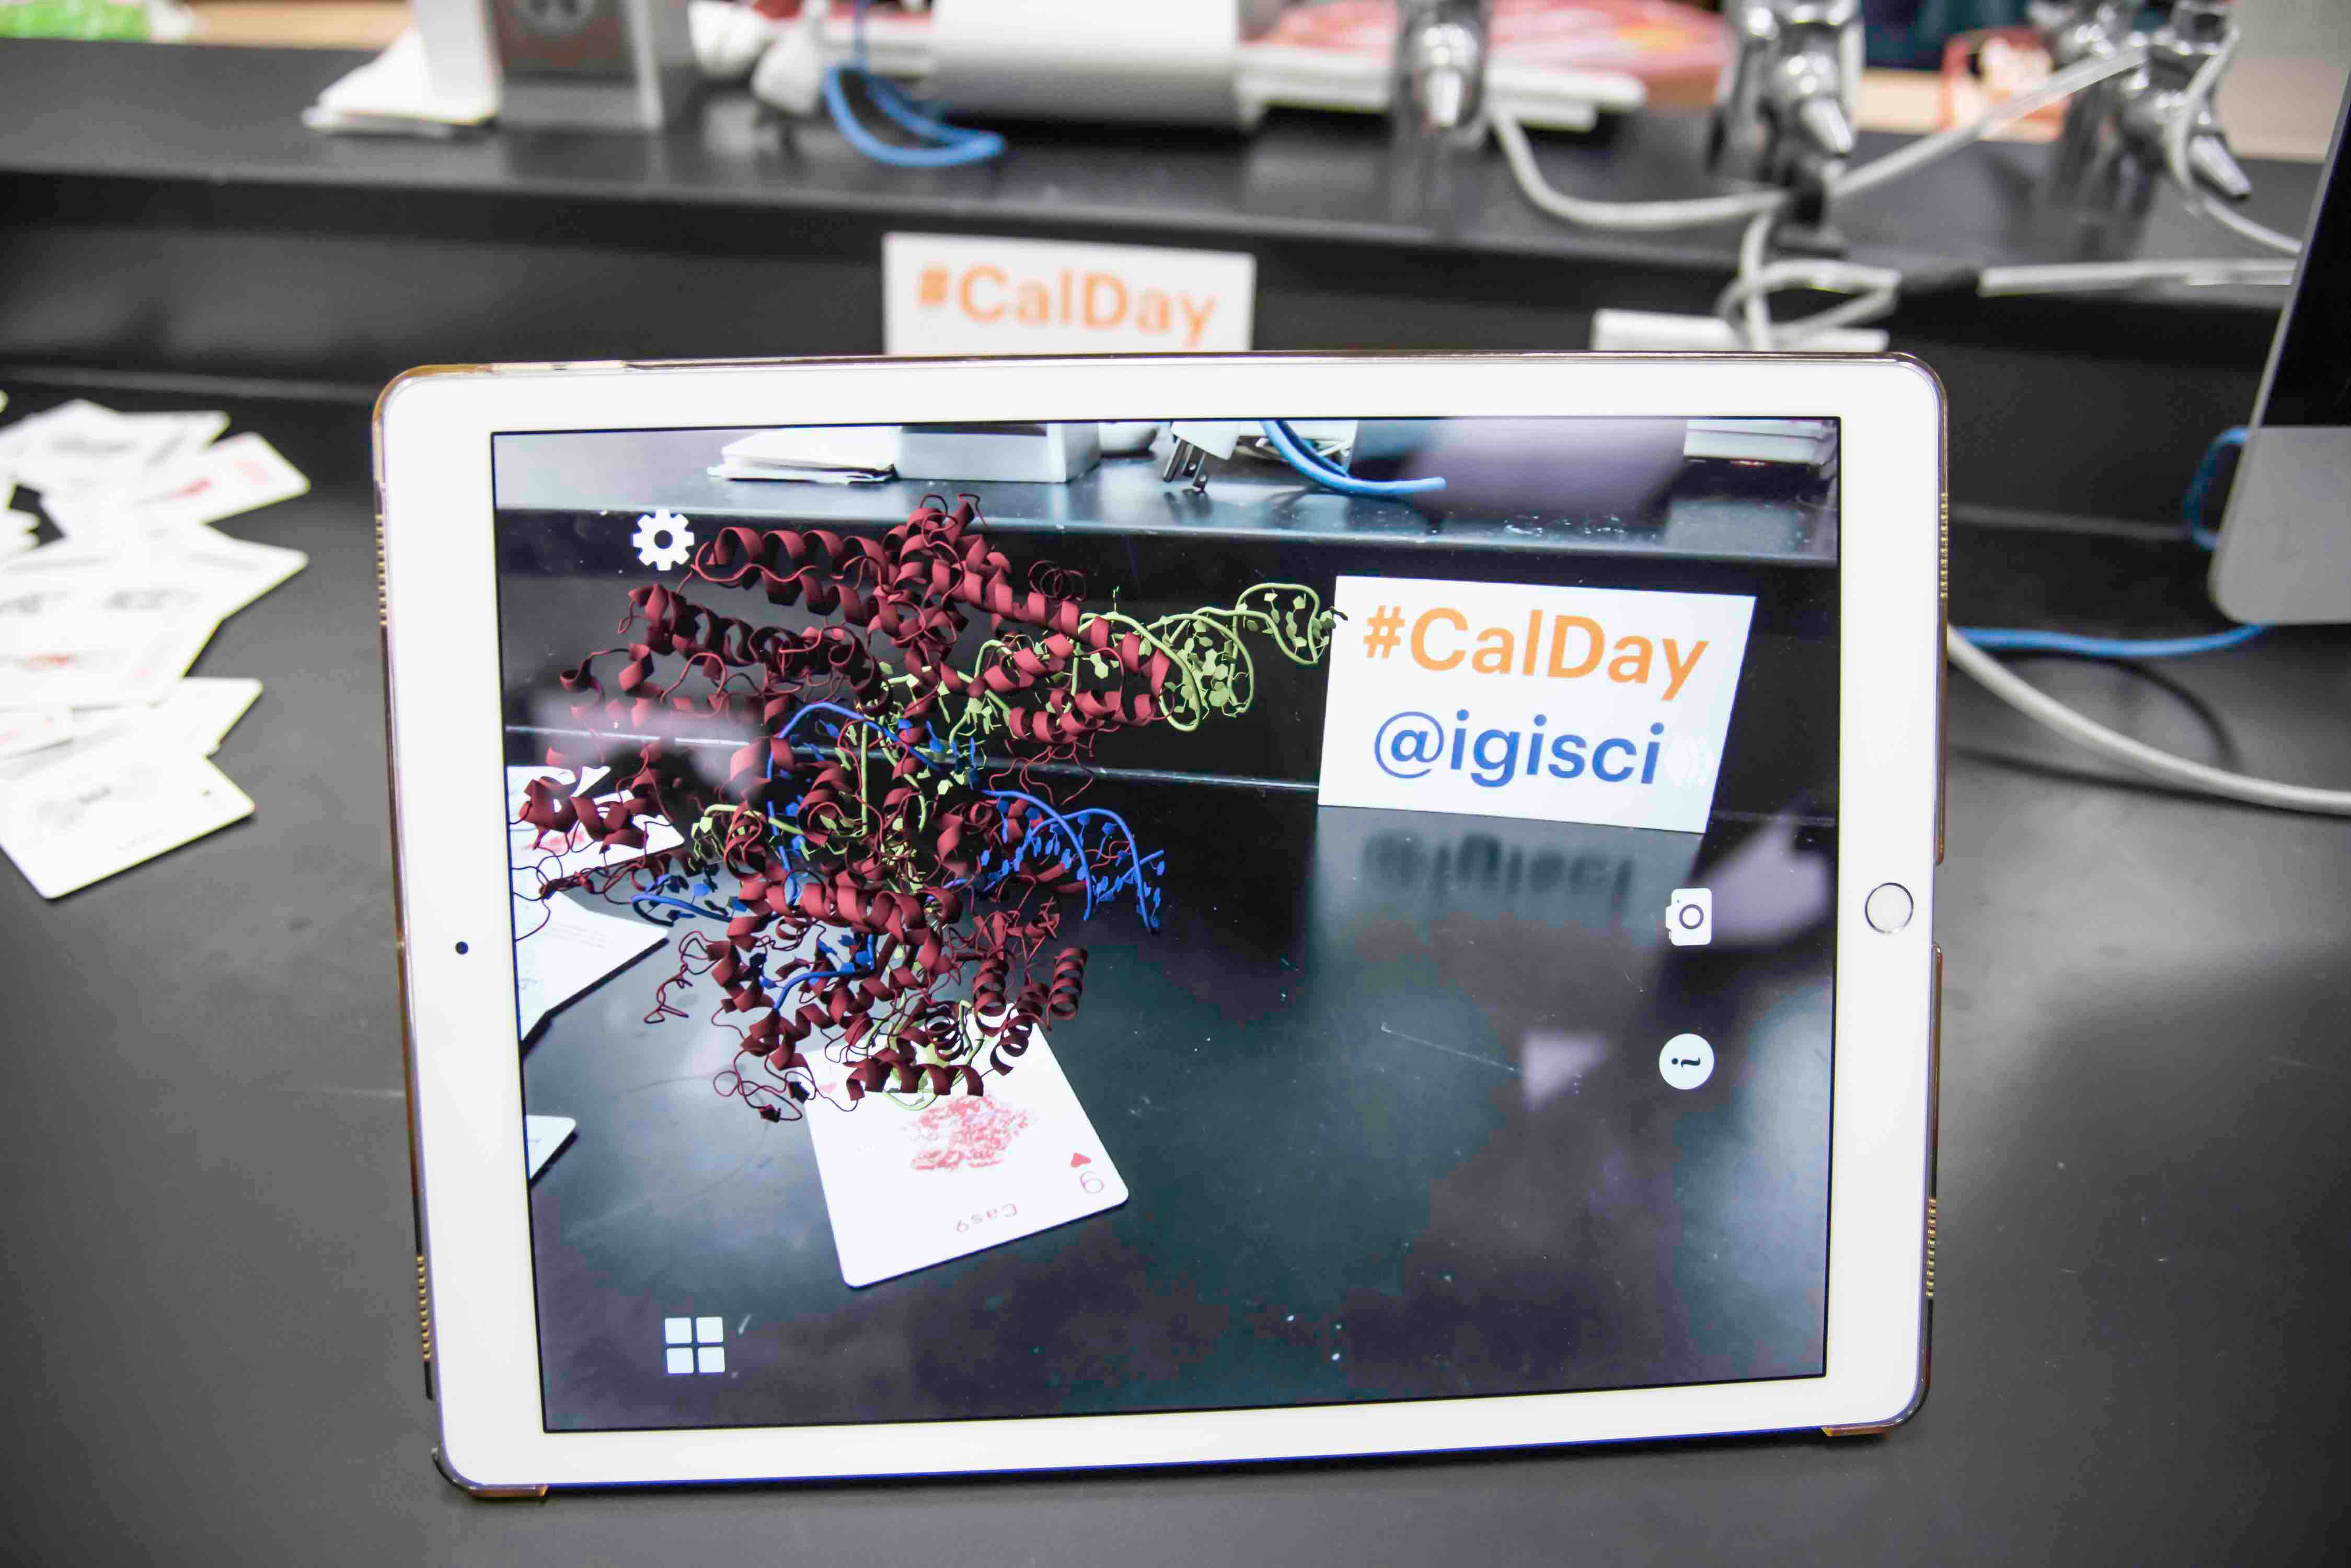 iPad with a protein shown in augmented reality